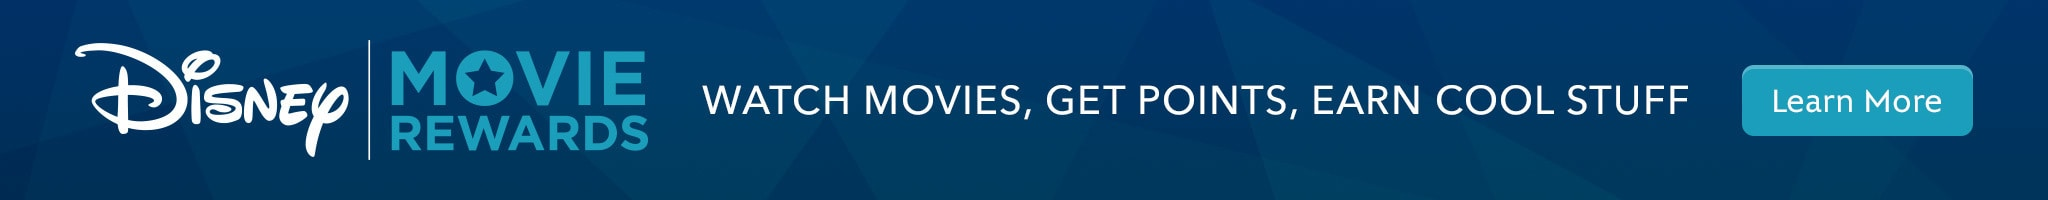 Disney Movie Rewards - Watch Movies, Get Points, Earn Cool Stuff - Learn More